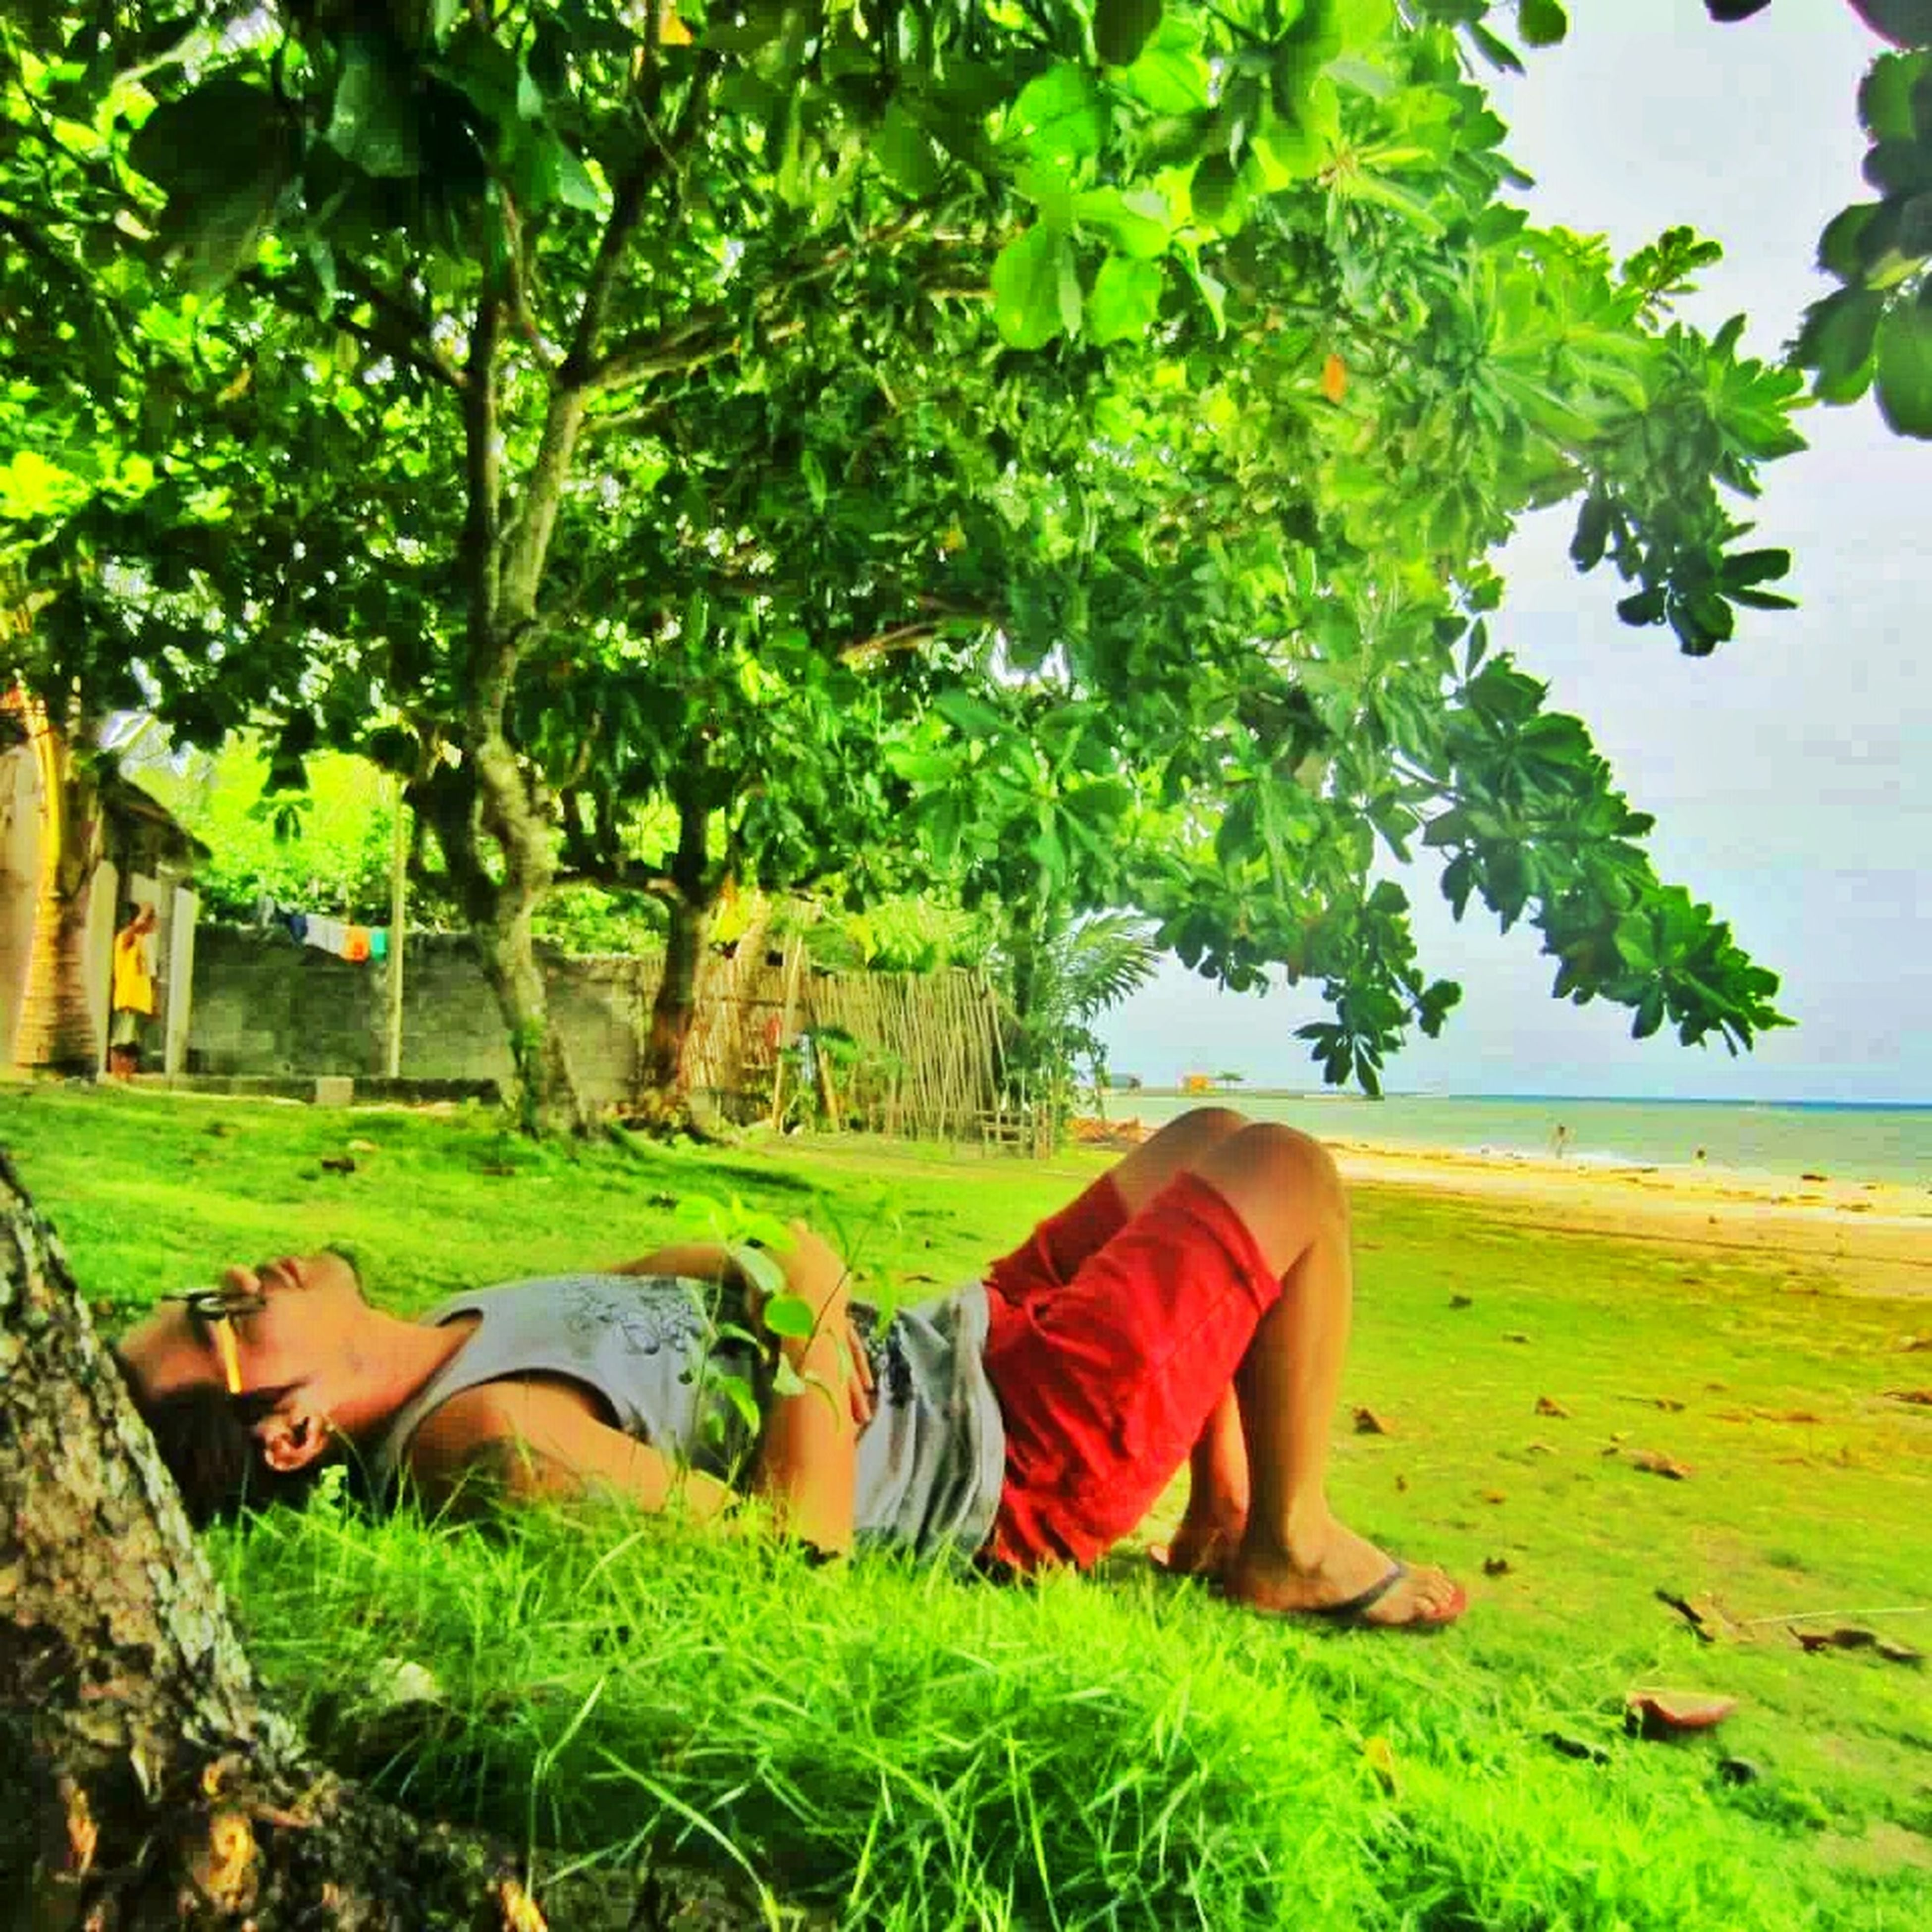 relaxation, lifestyles, leisure activity, grass, sitting, tree, person, casual clothing, relaxing, resting, nature, lying down, green color, rear view, day, full length, water, sunlight